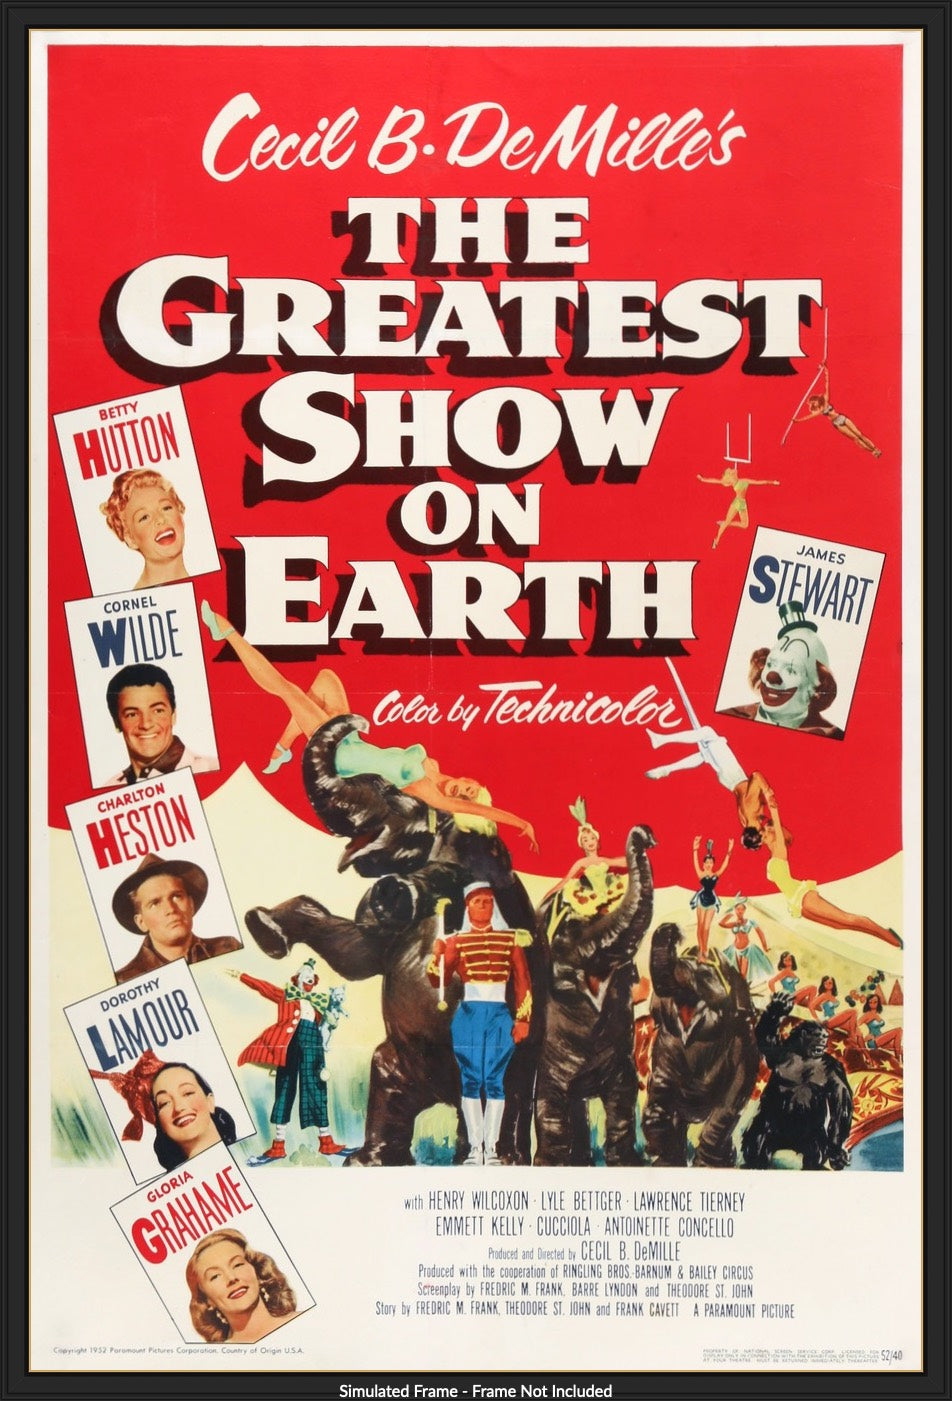 The Greatest Show on Earth (1952) Original One-Sheet Movie Poster -  Original Film Art - Vintage Movie Posters